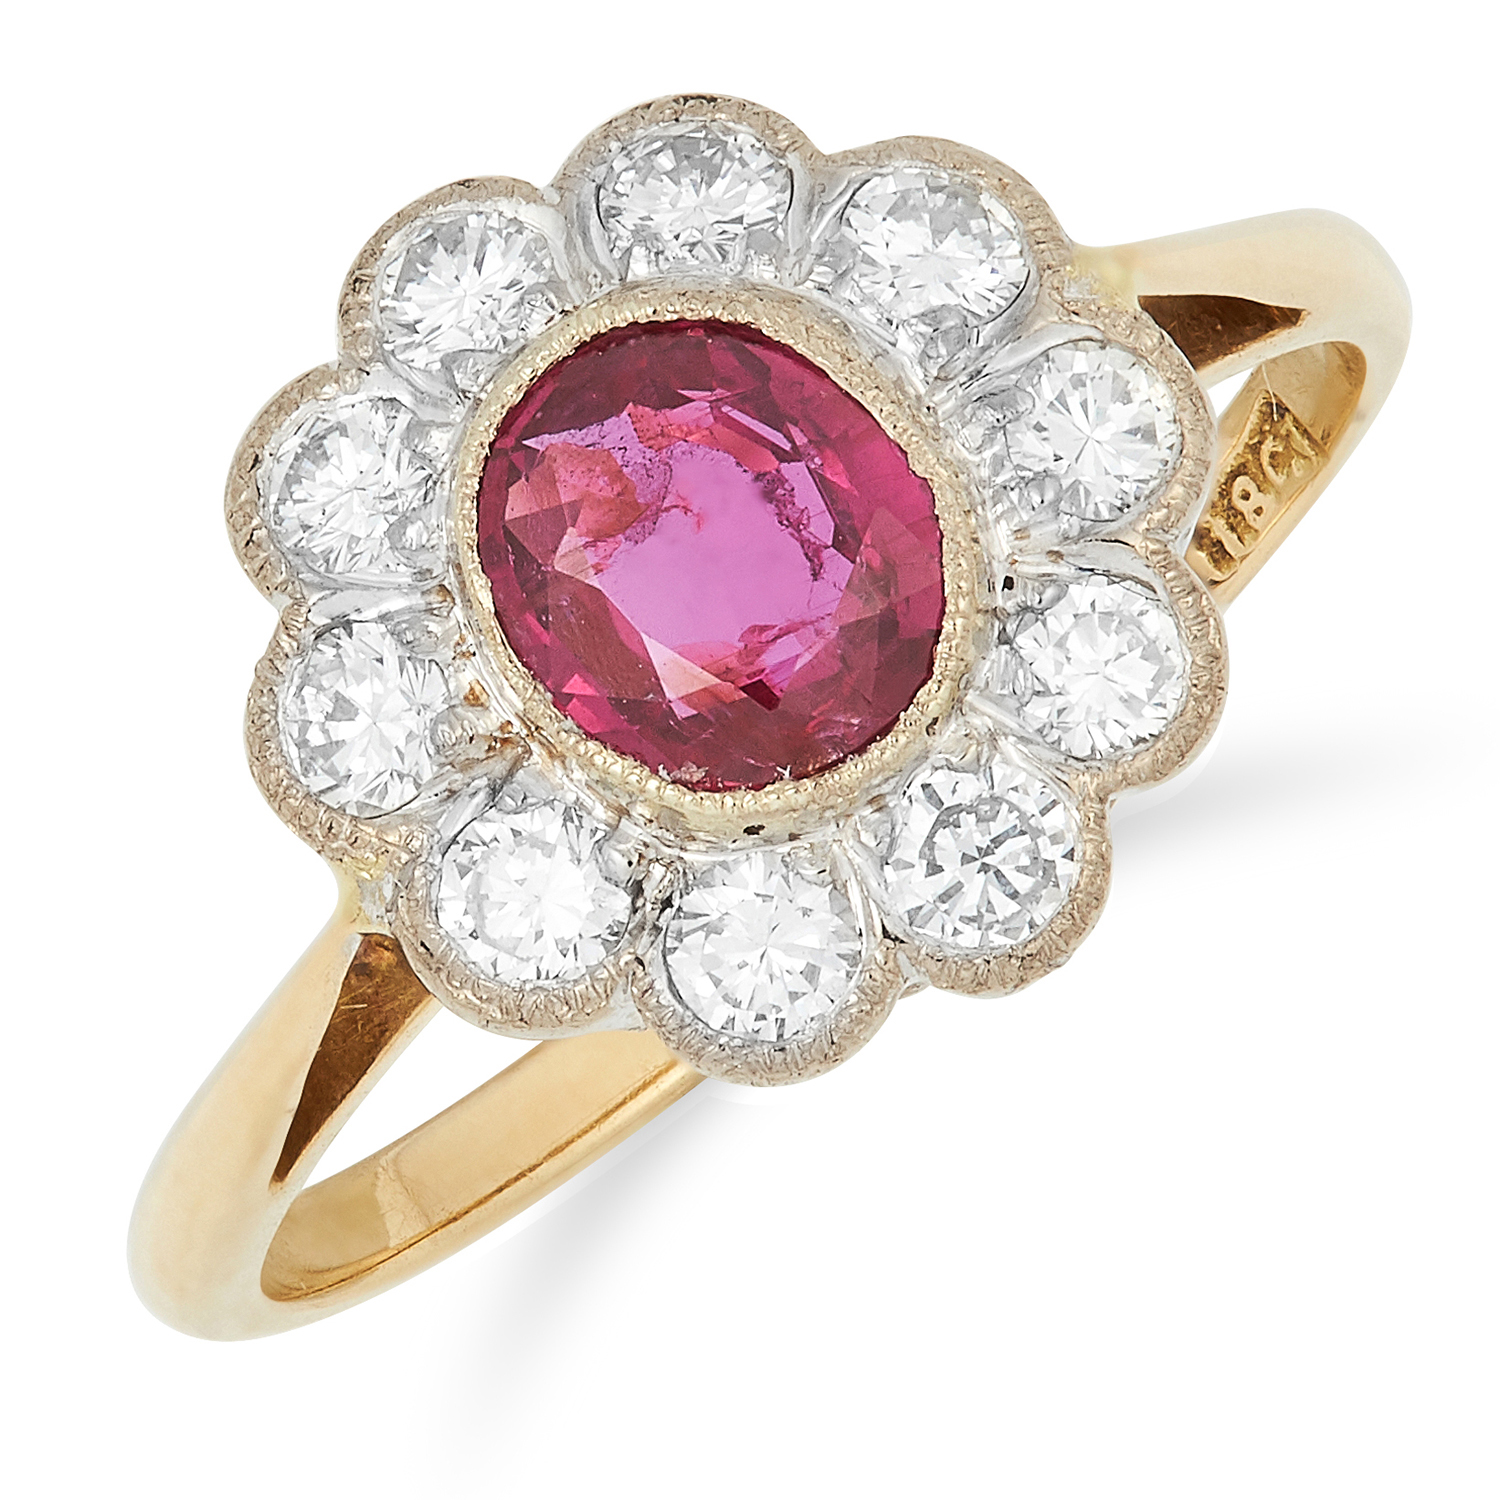 Los 28 - RUBY AND DIAMOND CLUSTER RING set with an oval cut ruby of approximately 0.68 carats, possibly Burma